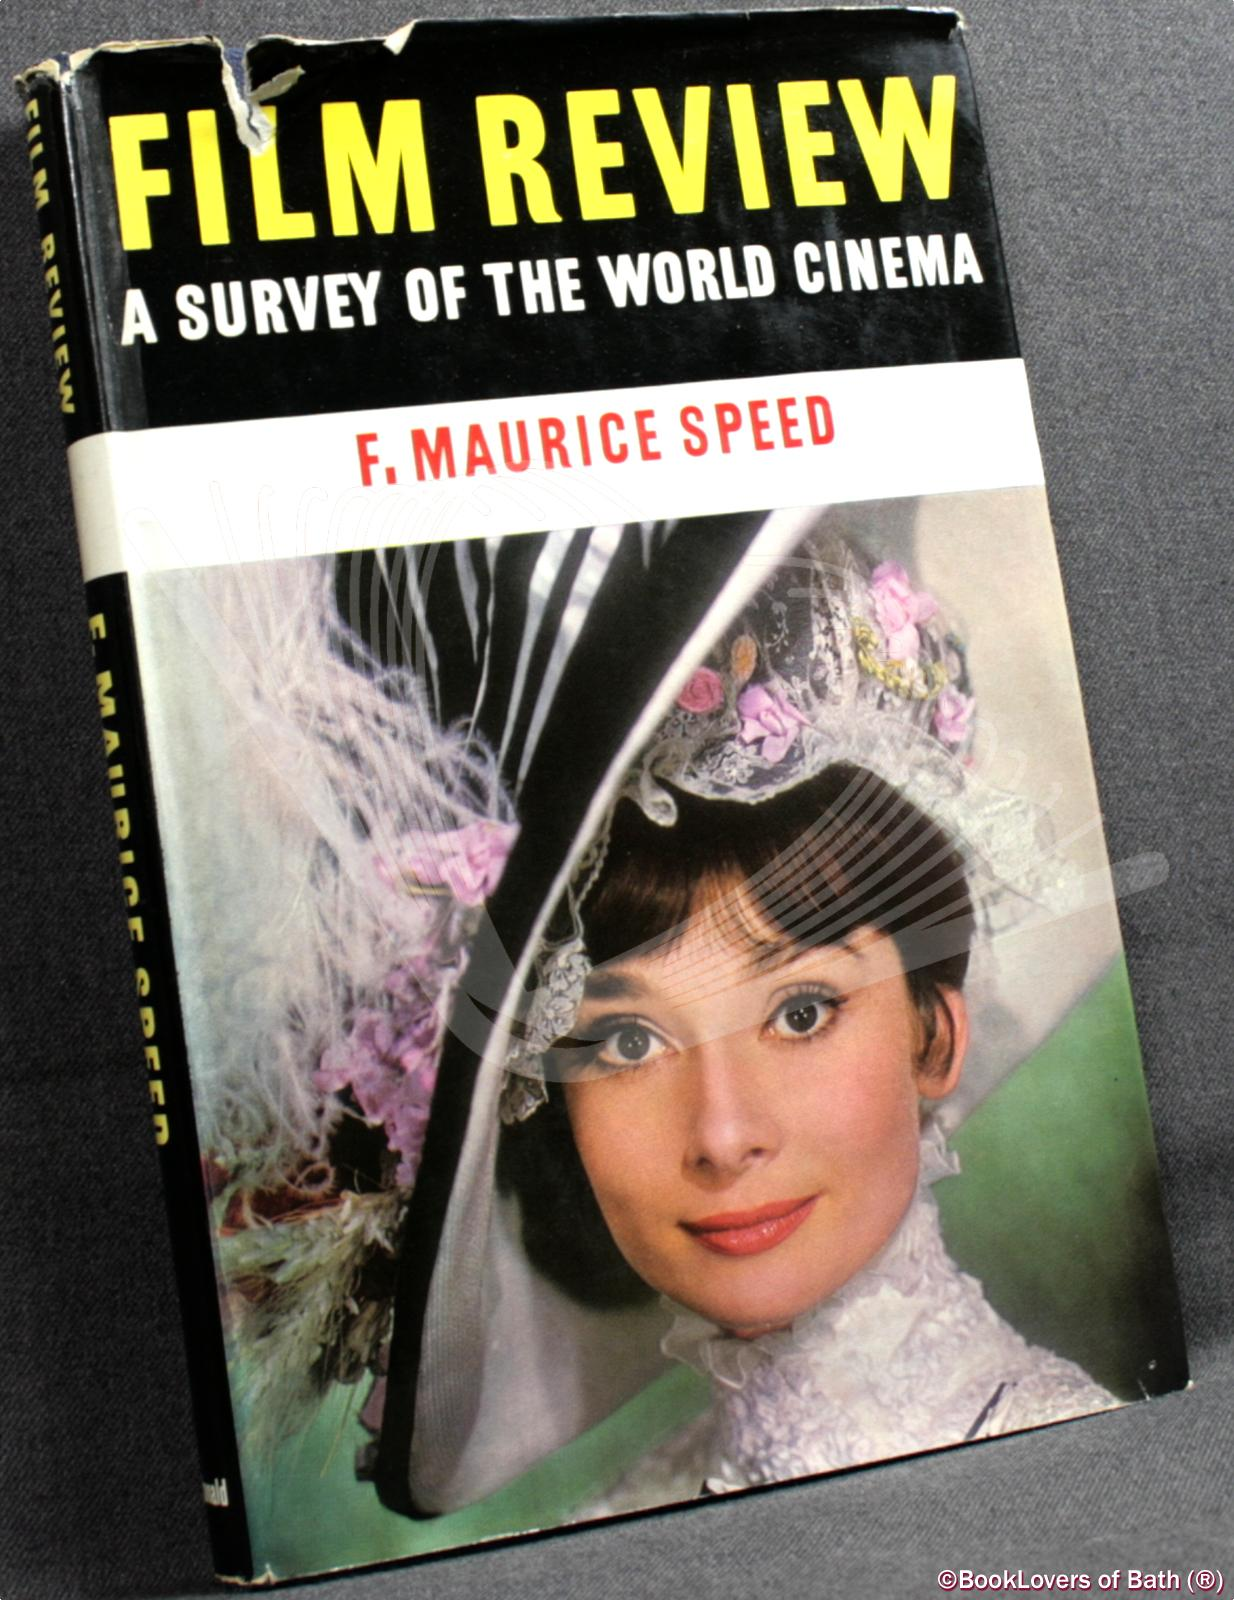 Film Review: A Survey of the World Cinema - Edited by F. Maurice Speed